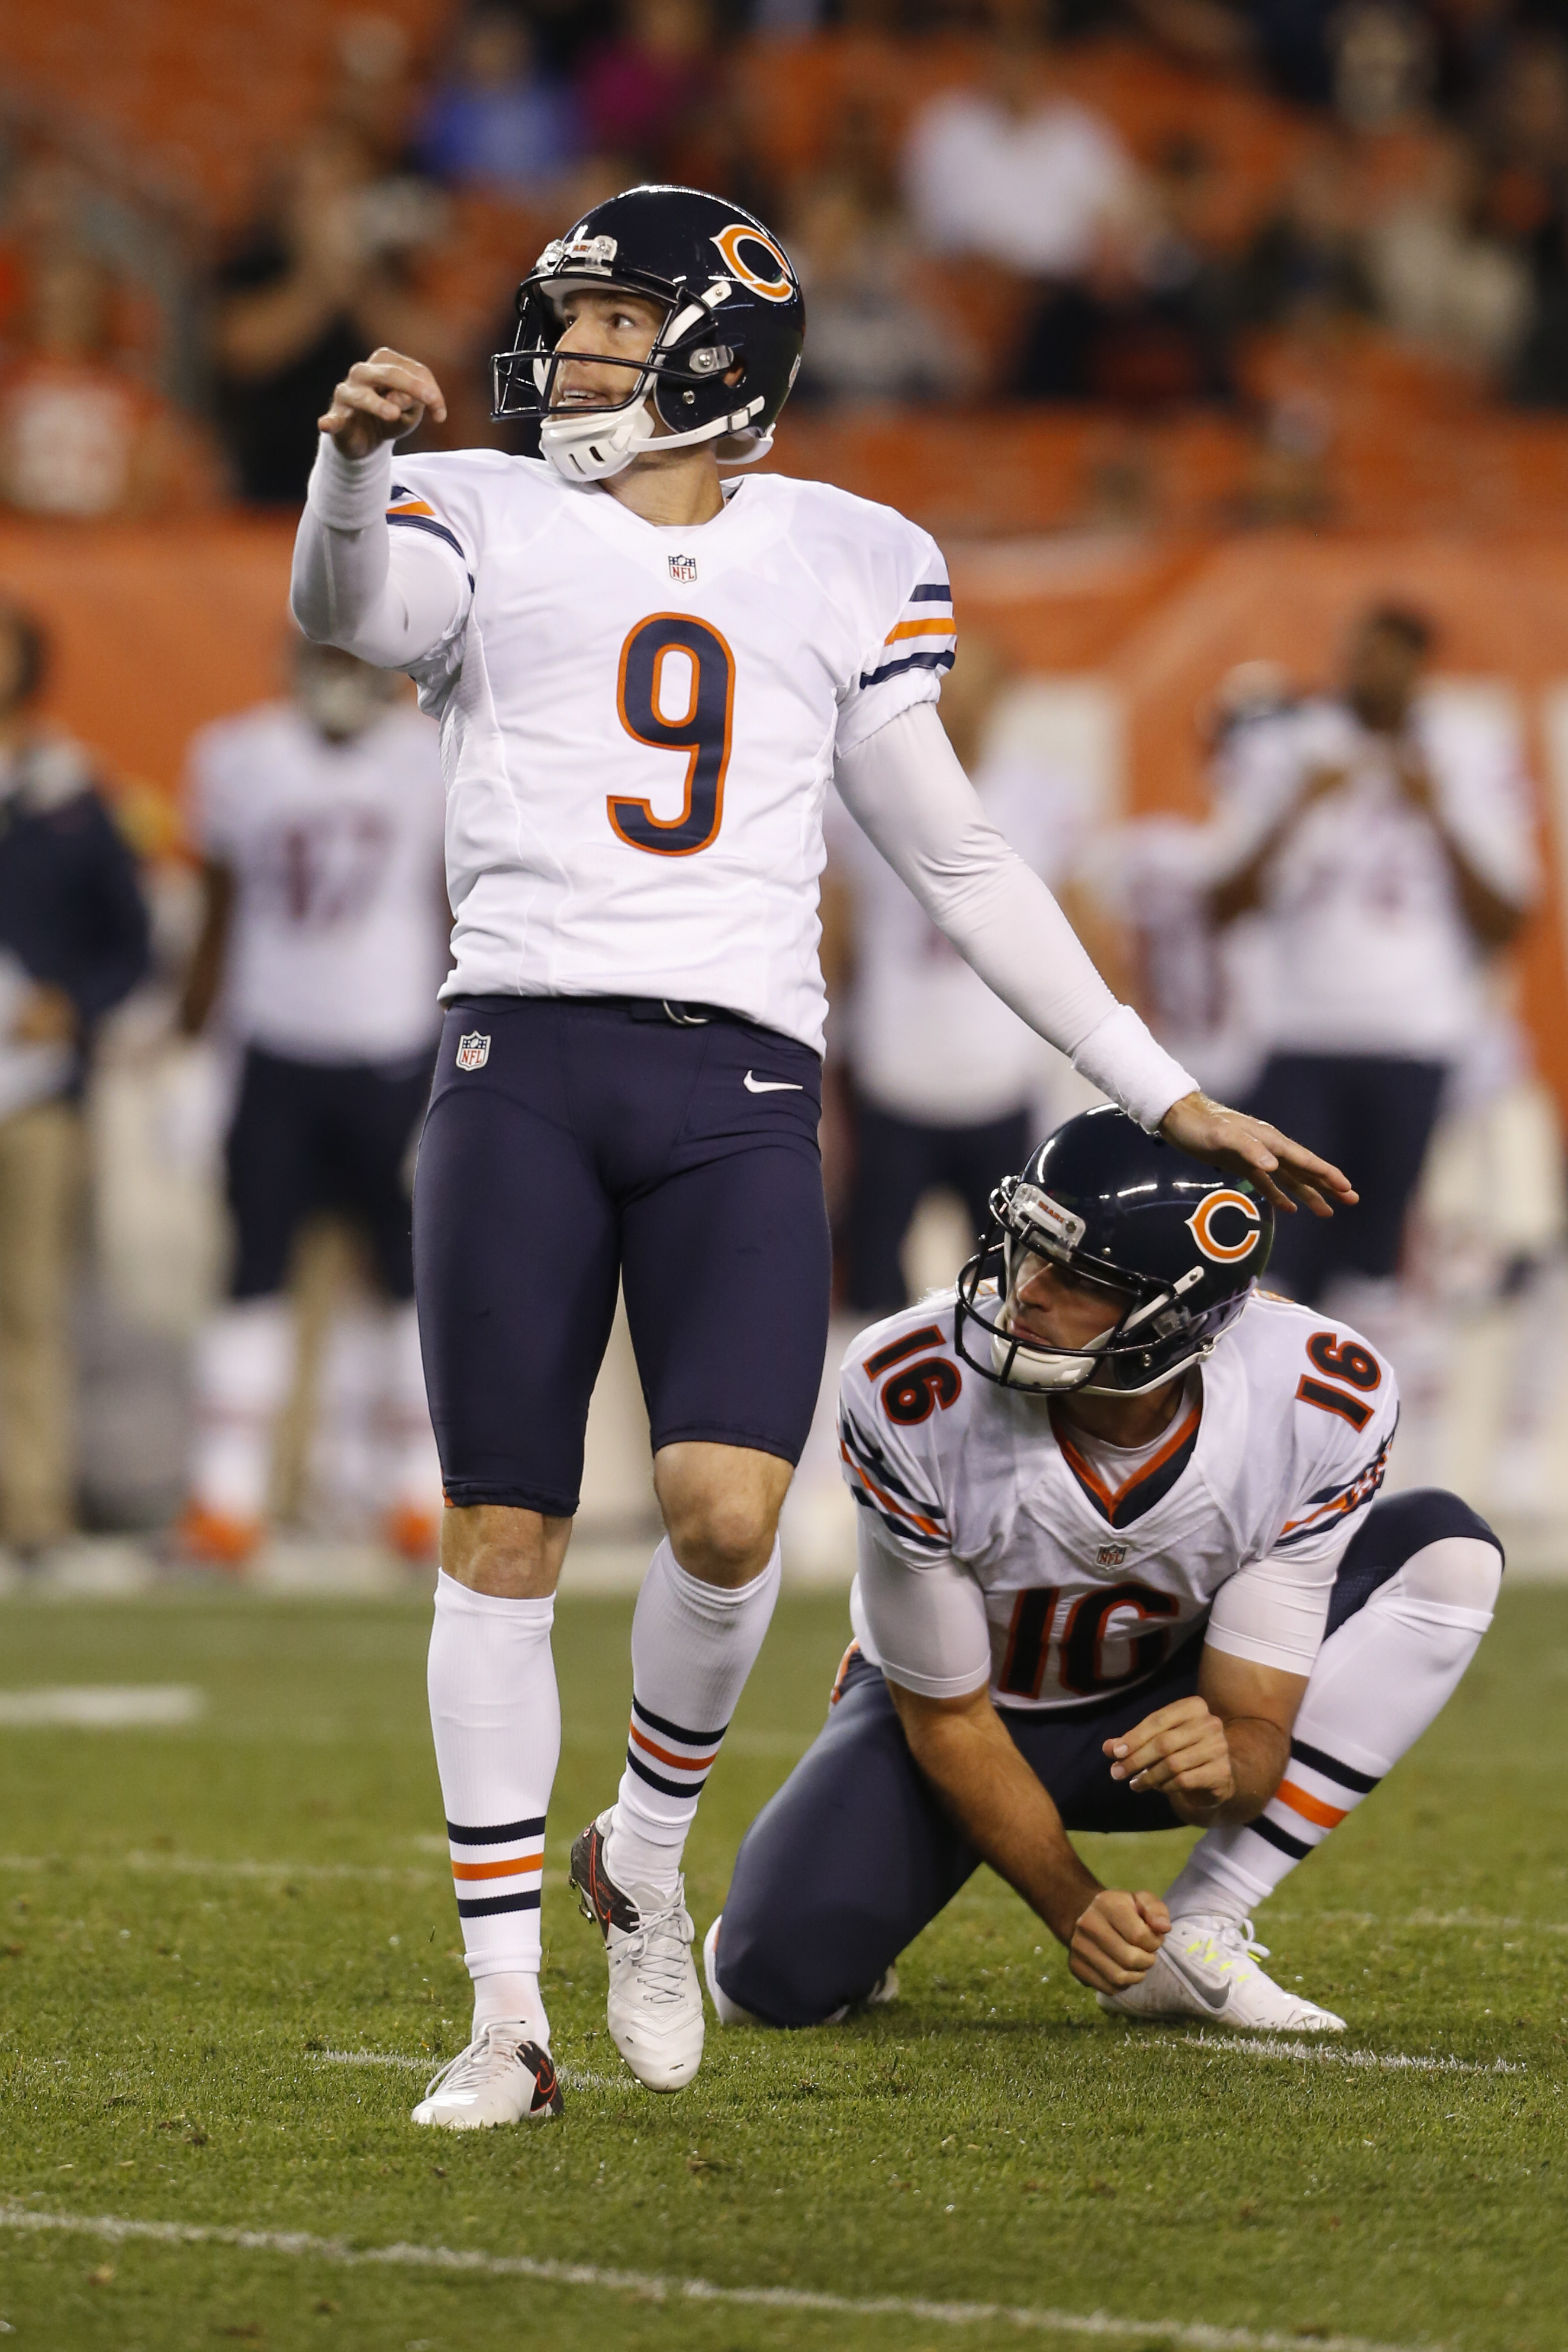 Chicago Bears kicker Robbie Gould (9) watches his field goal alongside punter Pat O'Donnell (16) during the first half of an NFL preseason football game against the Cleveland Browns, Thursday, Sept. 1, 2016, in Cleveland. (AP Photo/Ron Schwane)